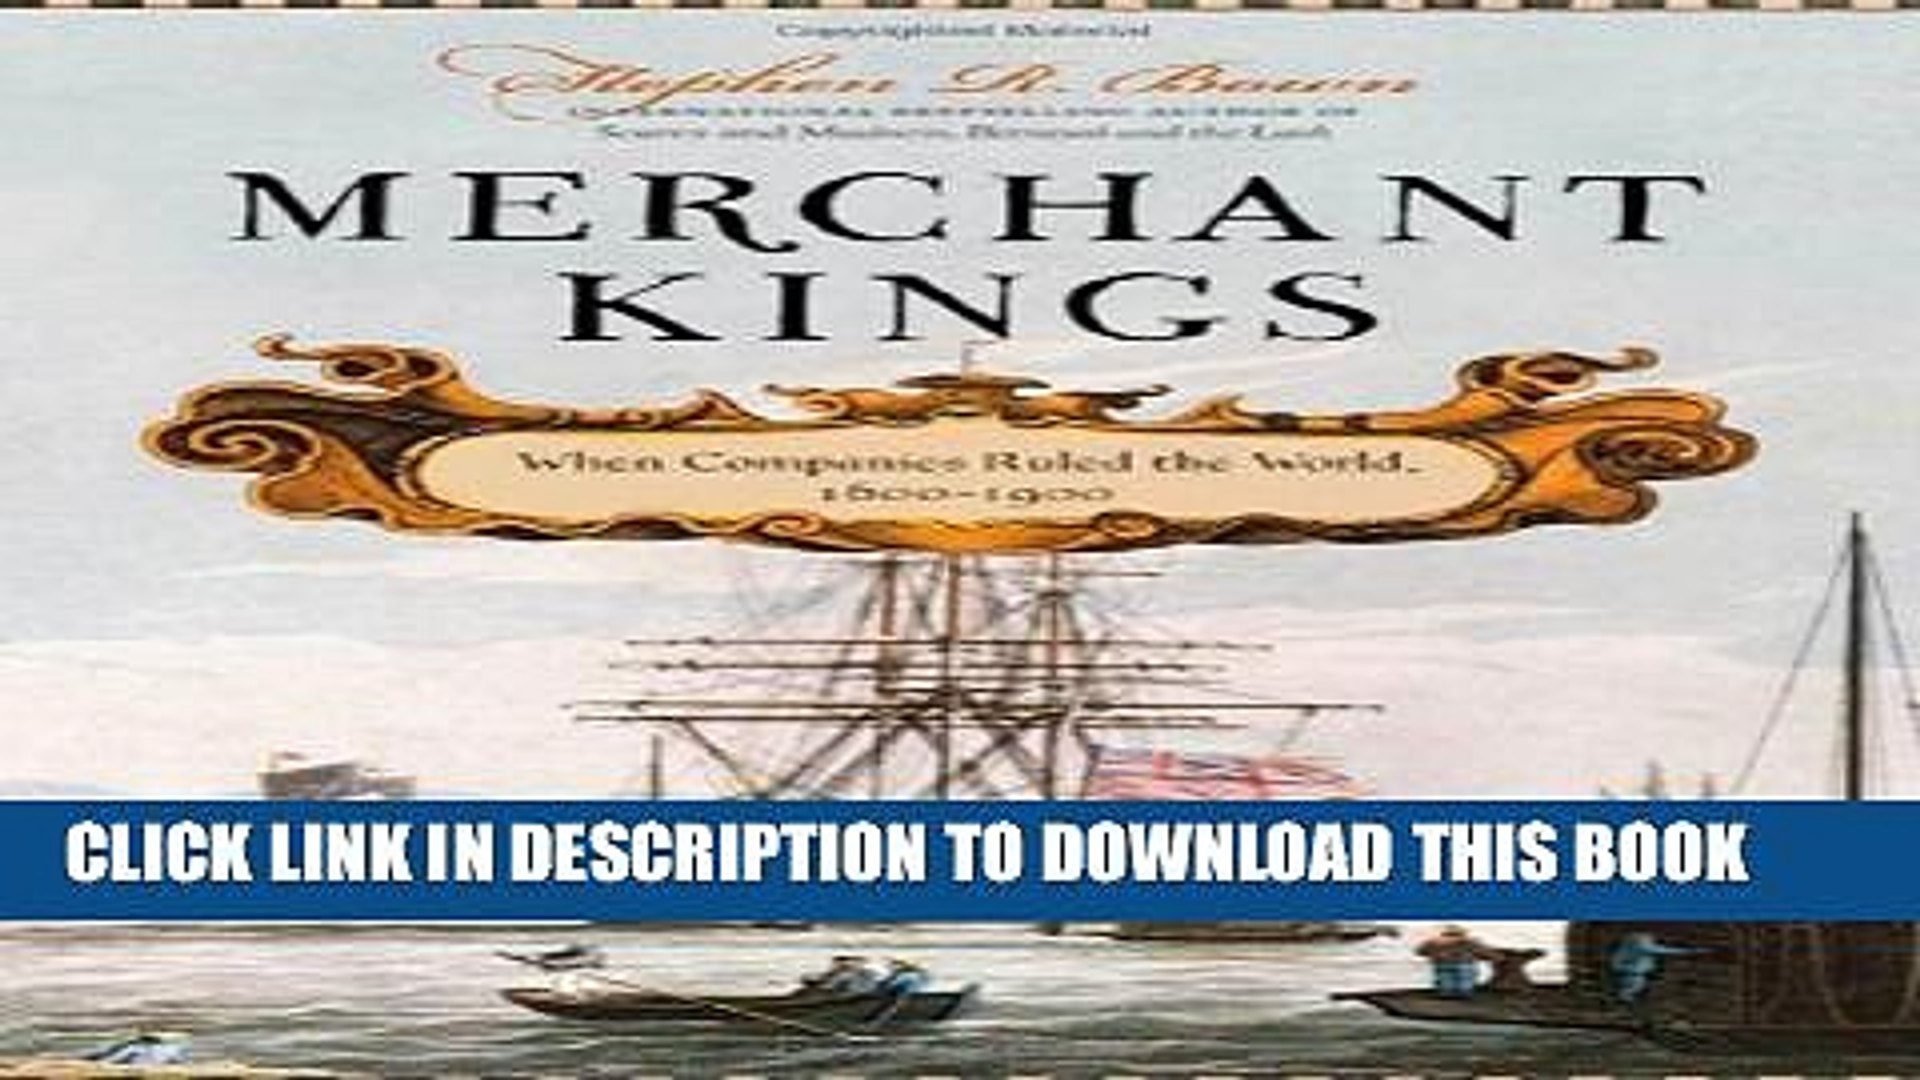 Collection Book Merchant Kings: When Companies Ruled the World, 1600--1900